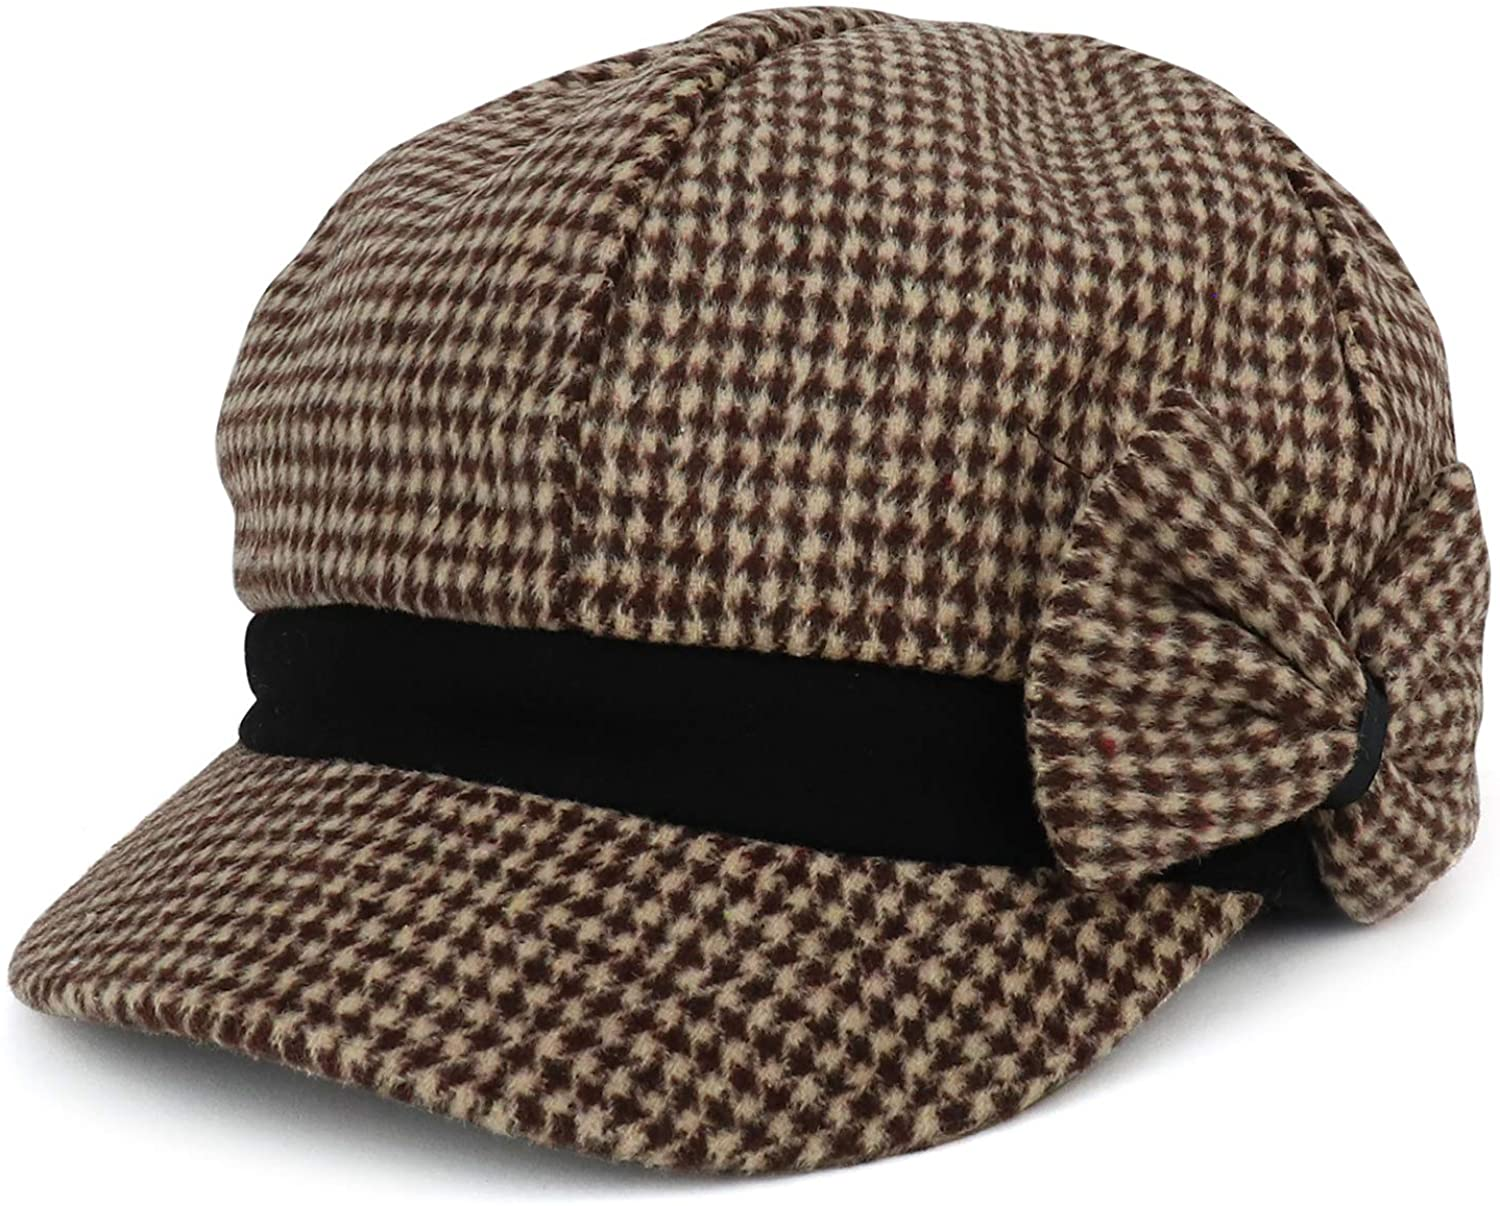 Armycrew Women's Houndstooth Pattern Newsboy Cap with Side Bow